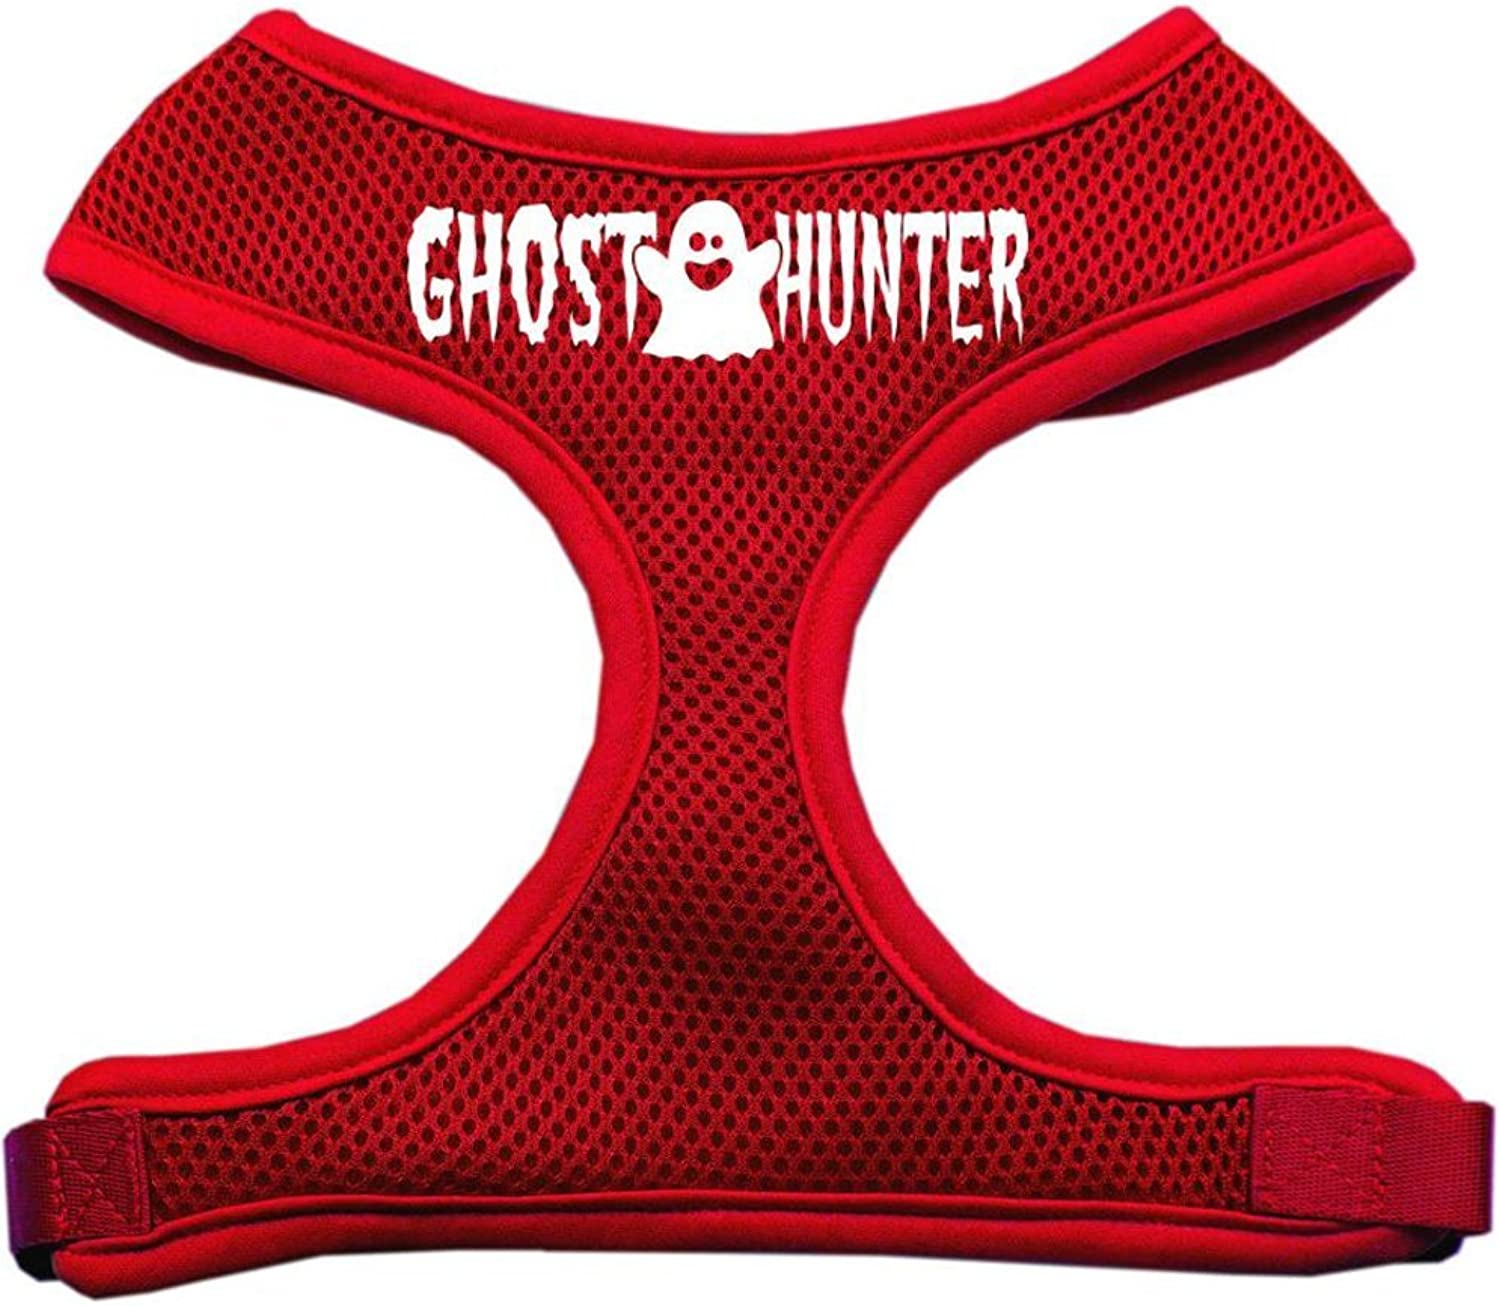 Dog   Cat   Pet Charms Ghost Hunter Design Soft Mesh Harnesses Red Large